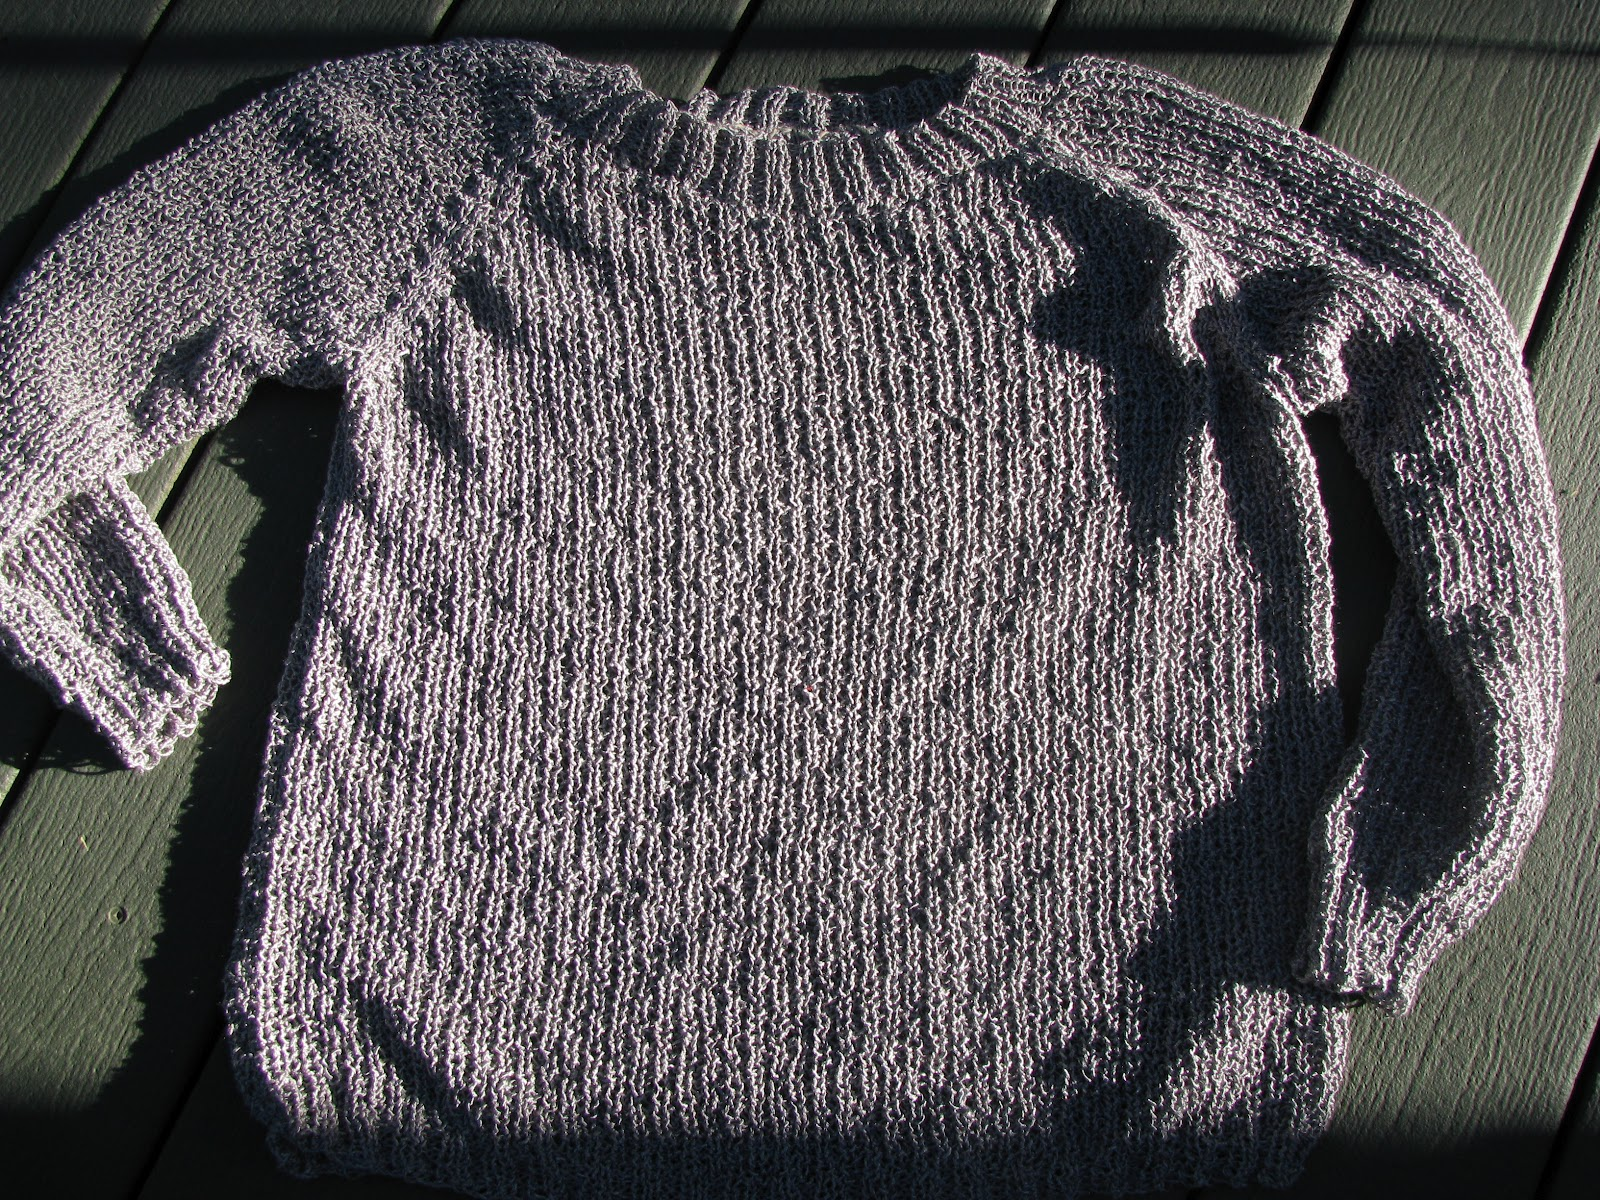 Knitting Patterns Sweater : Chris knits in niagara million hits sweater